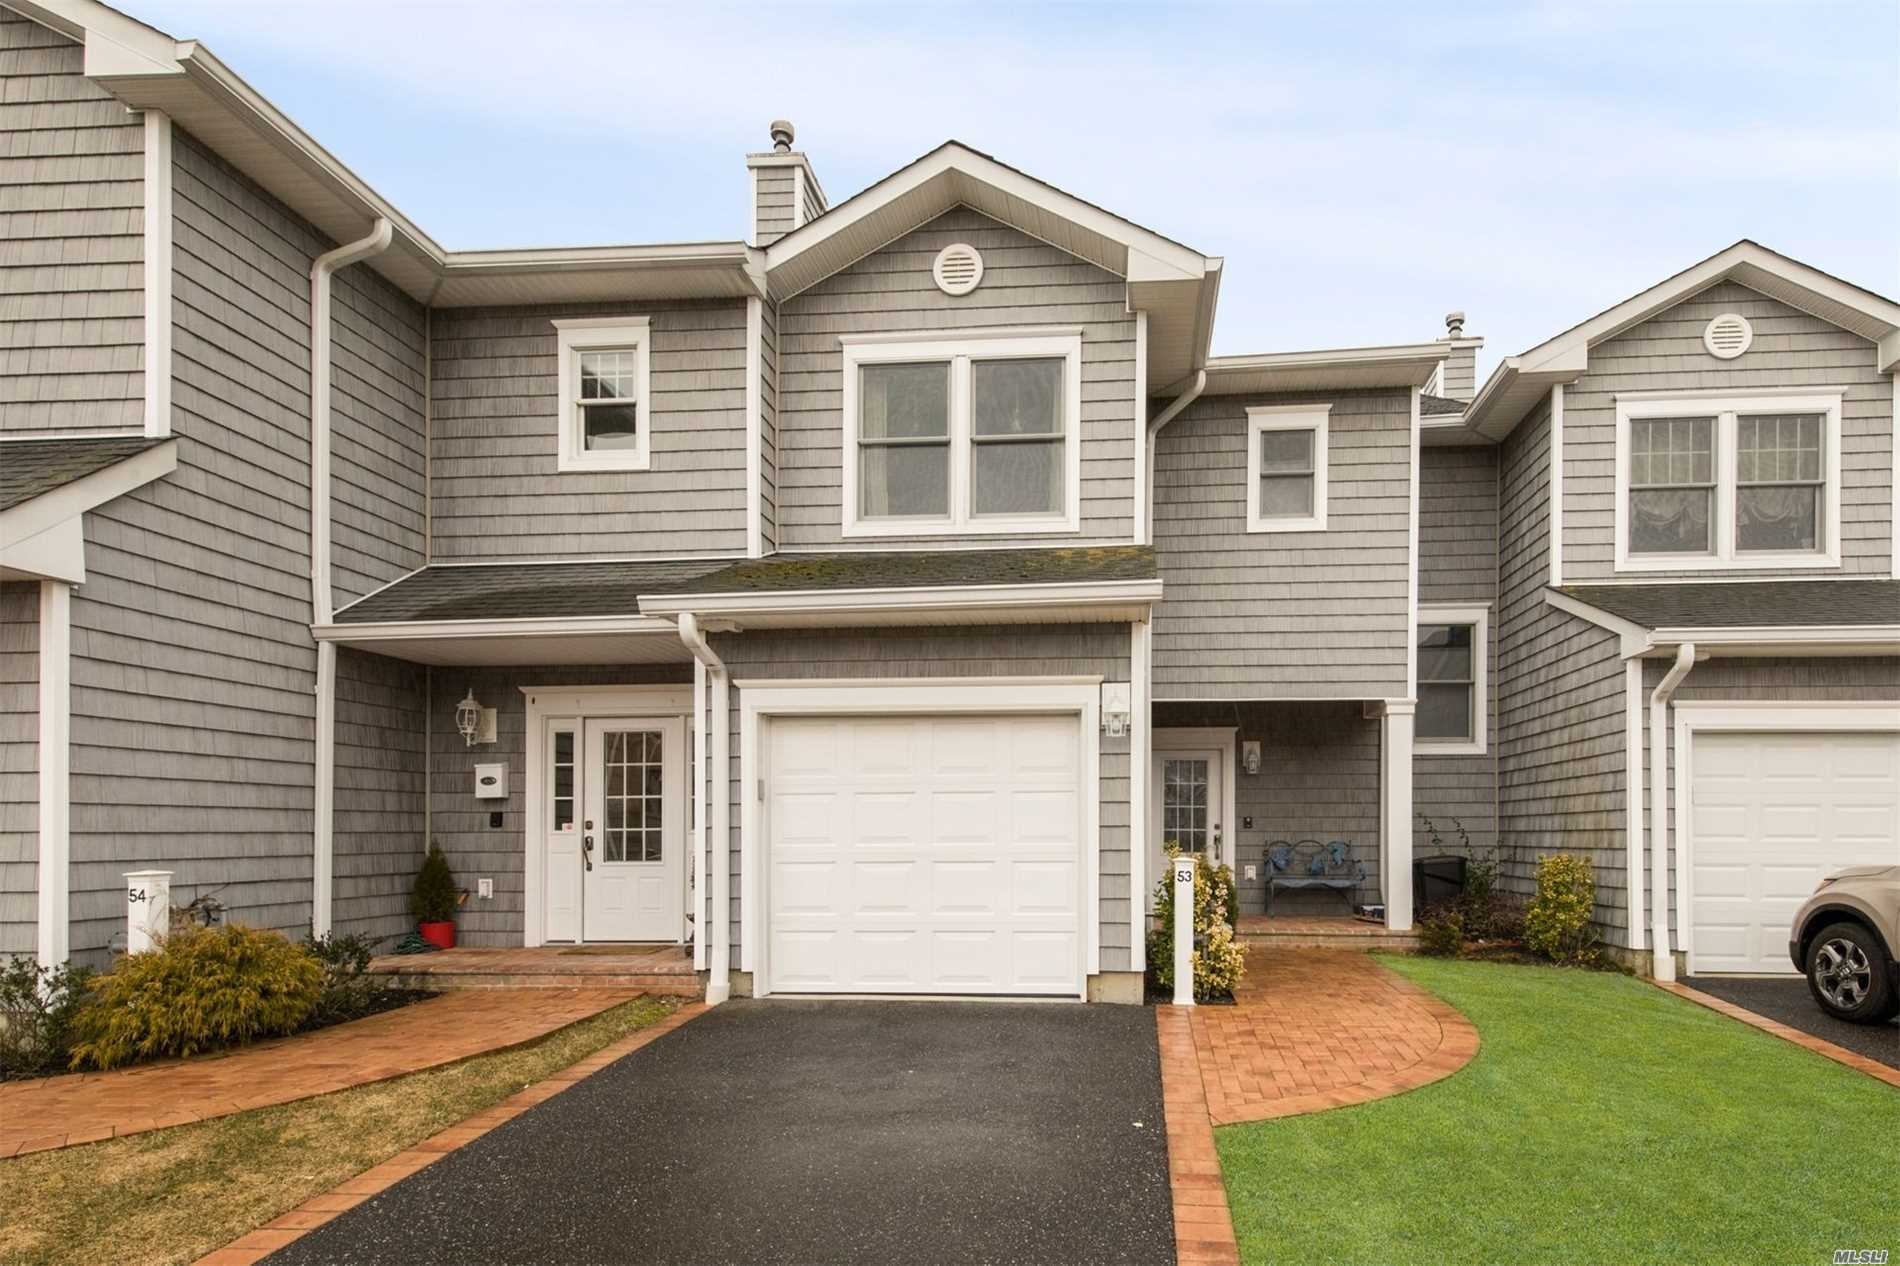 Feel like You are on Vacation Every Day. 3 Br 3 Bath Semidetached Townhouse in New Gated Boating Community; Andersen Windows/Sliders; Granite and Stainless Appliances; Pre--Engineer for Elevator; Patio of Master; No Maintenance Deck off Great Room. Garage and Private Driveway; Includes Your Own Boat Slip.